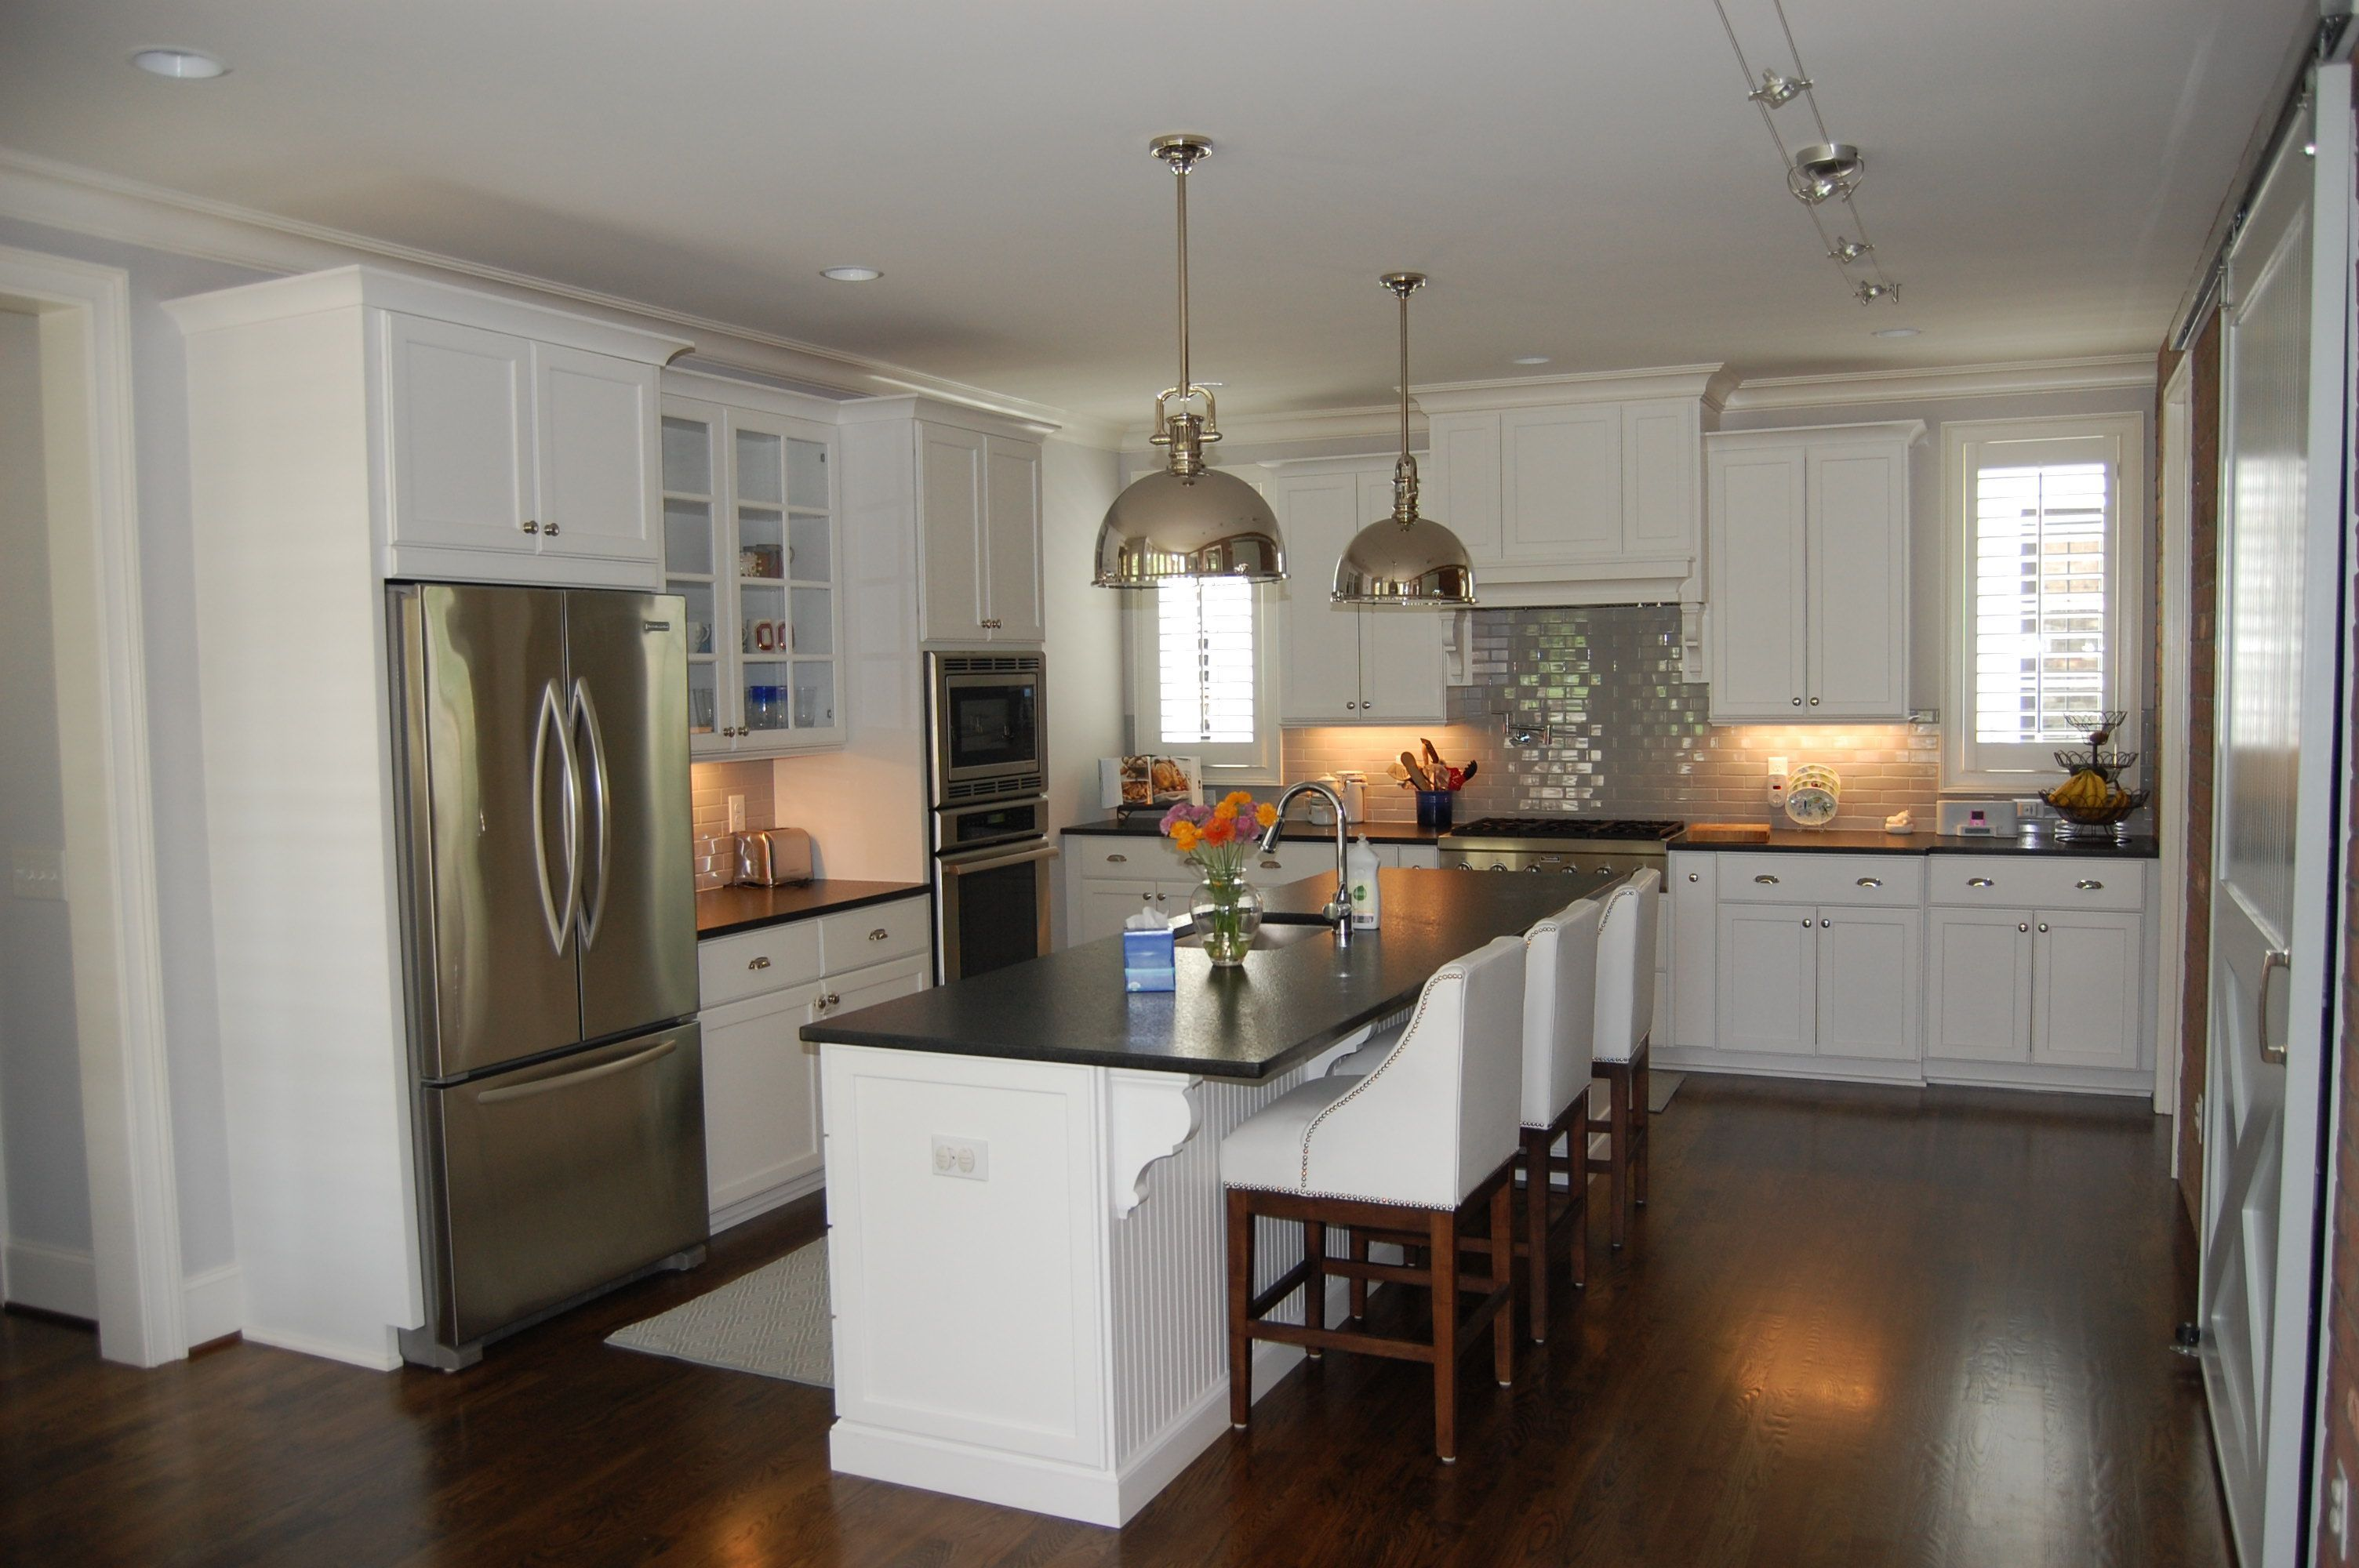 Red Line Cabinetry Cabinetry Hagerstown Kitchens Remodeling Cabinets Hagerstown Md Home Decorating Kitchen In 2019 Cheap Kitchen Remodel Condo Kitchen Remodel Kitchen Remodel